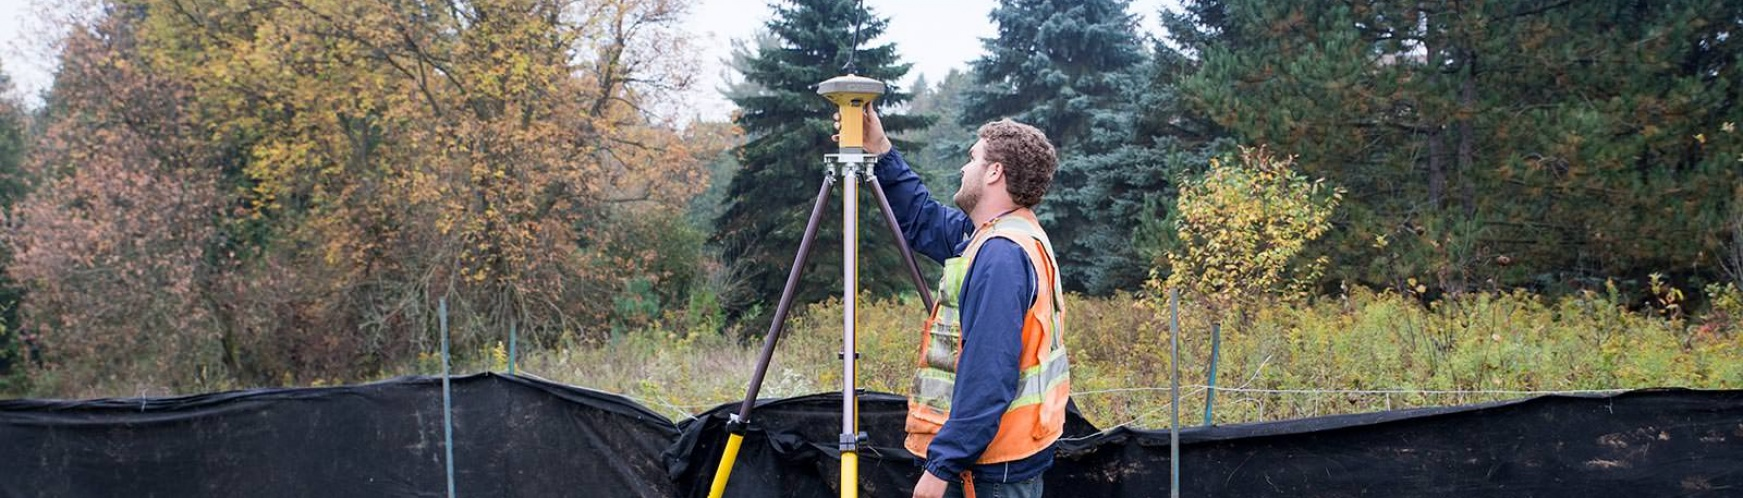 Land Surveying | Topcon Positioning Systems, Inc